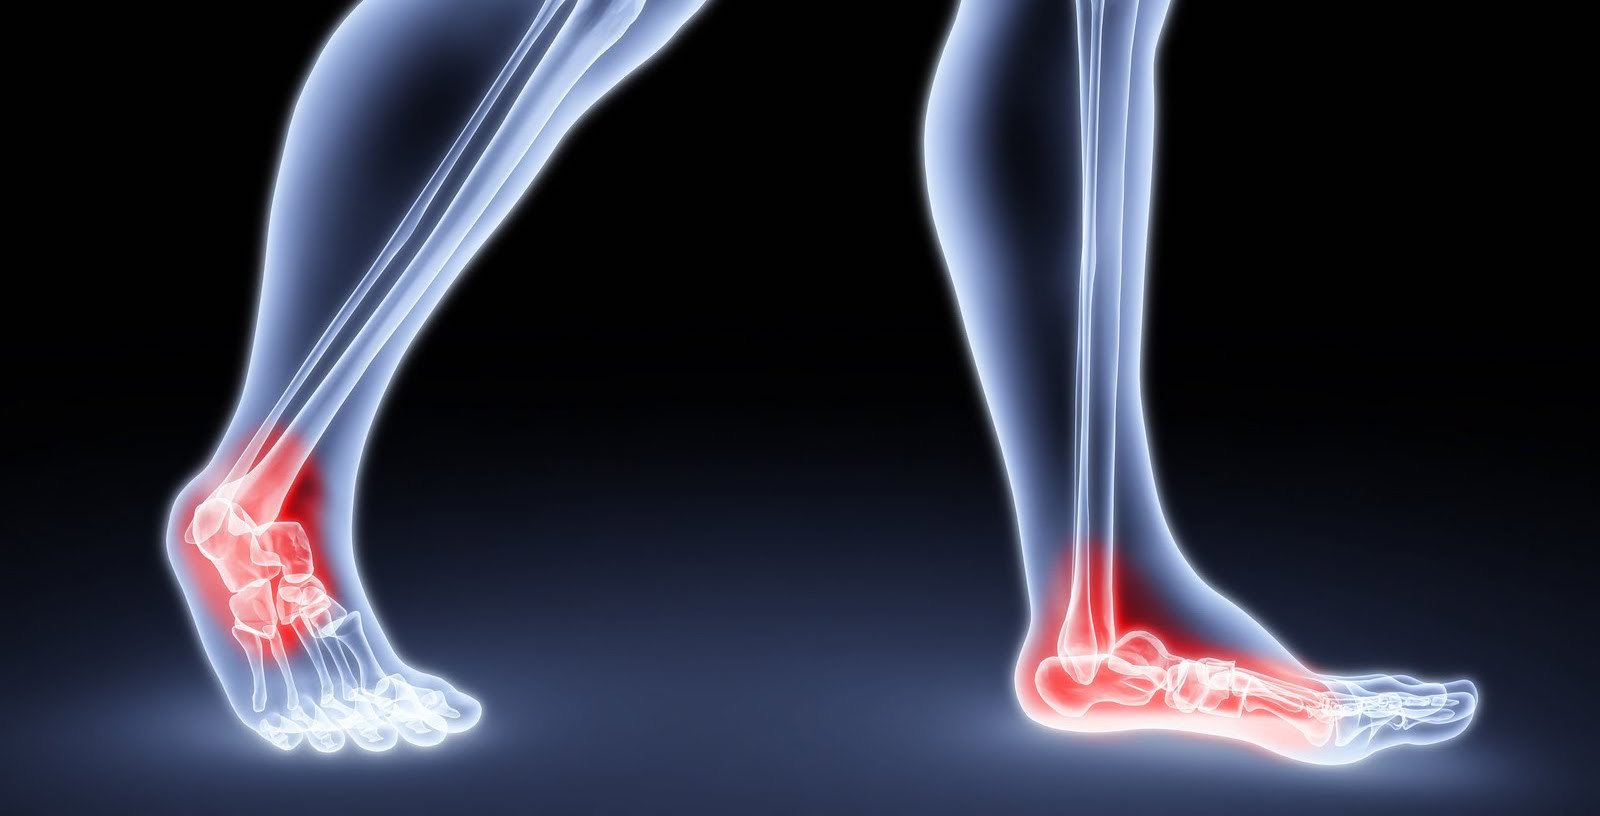 Could That Pain In Your Foot Be Arthritis Foot And Ankle Specialists